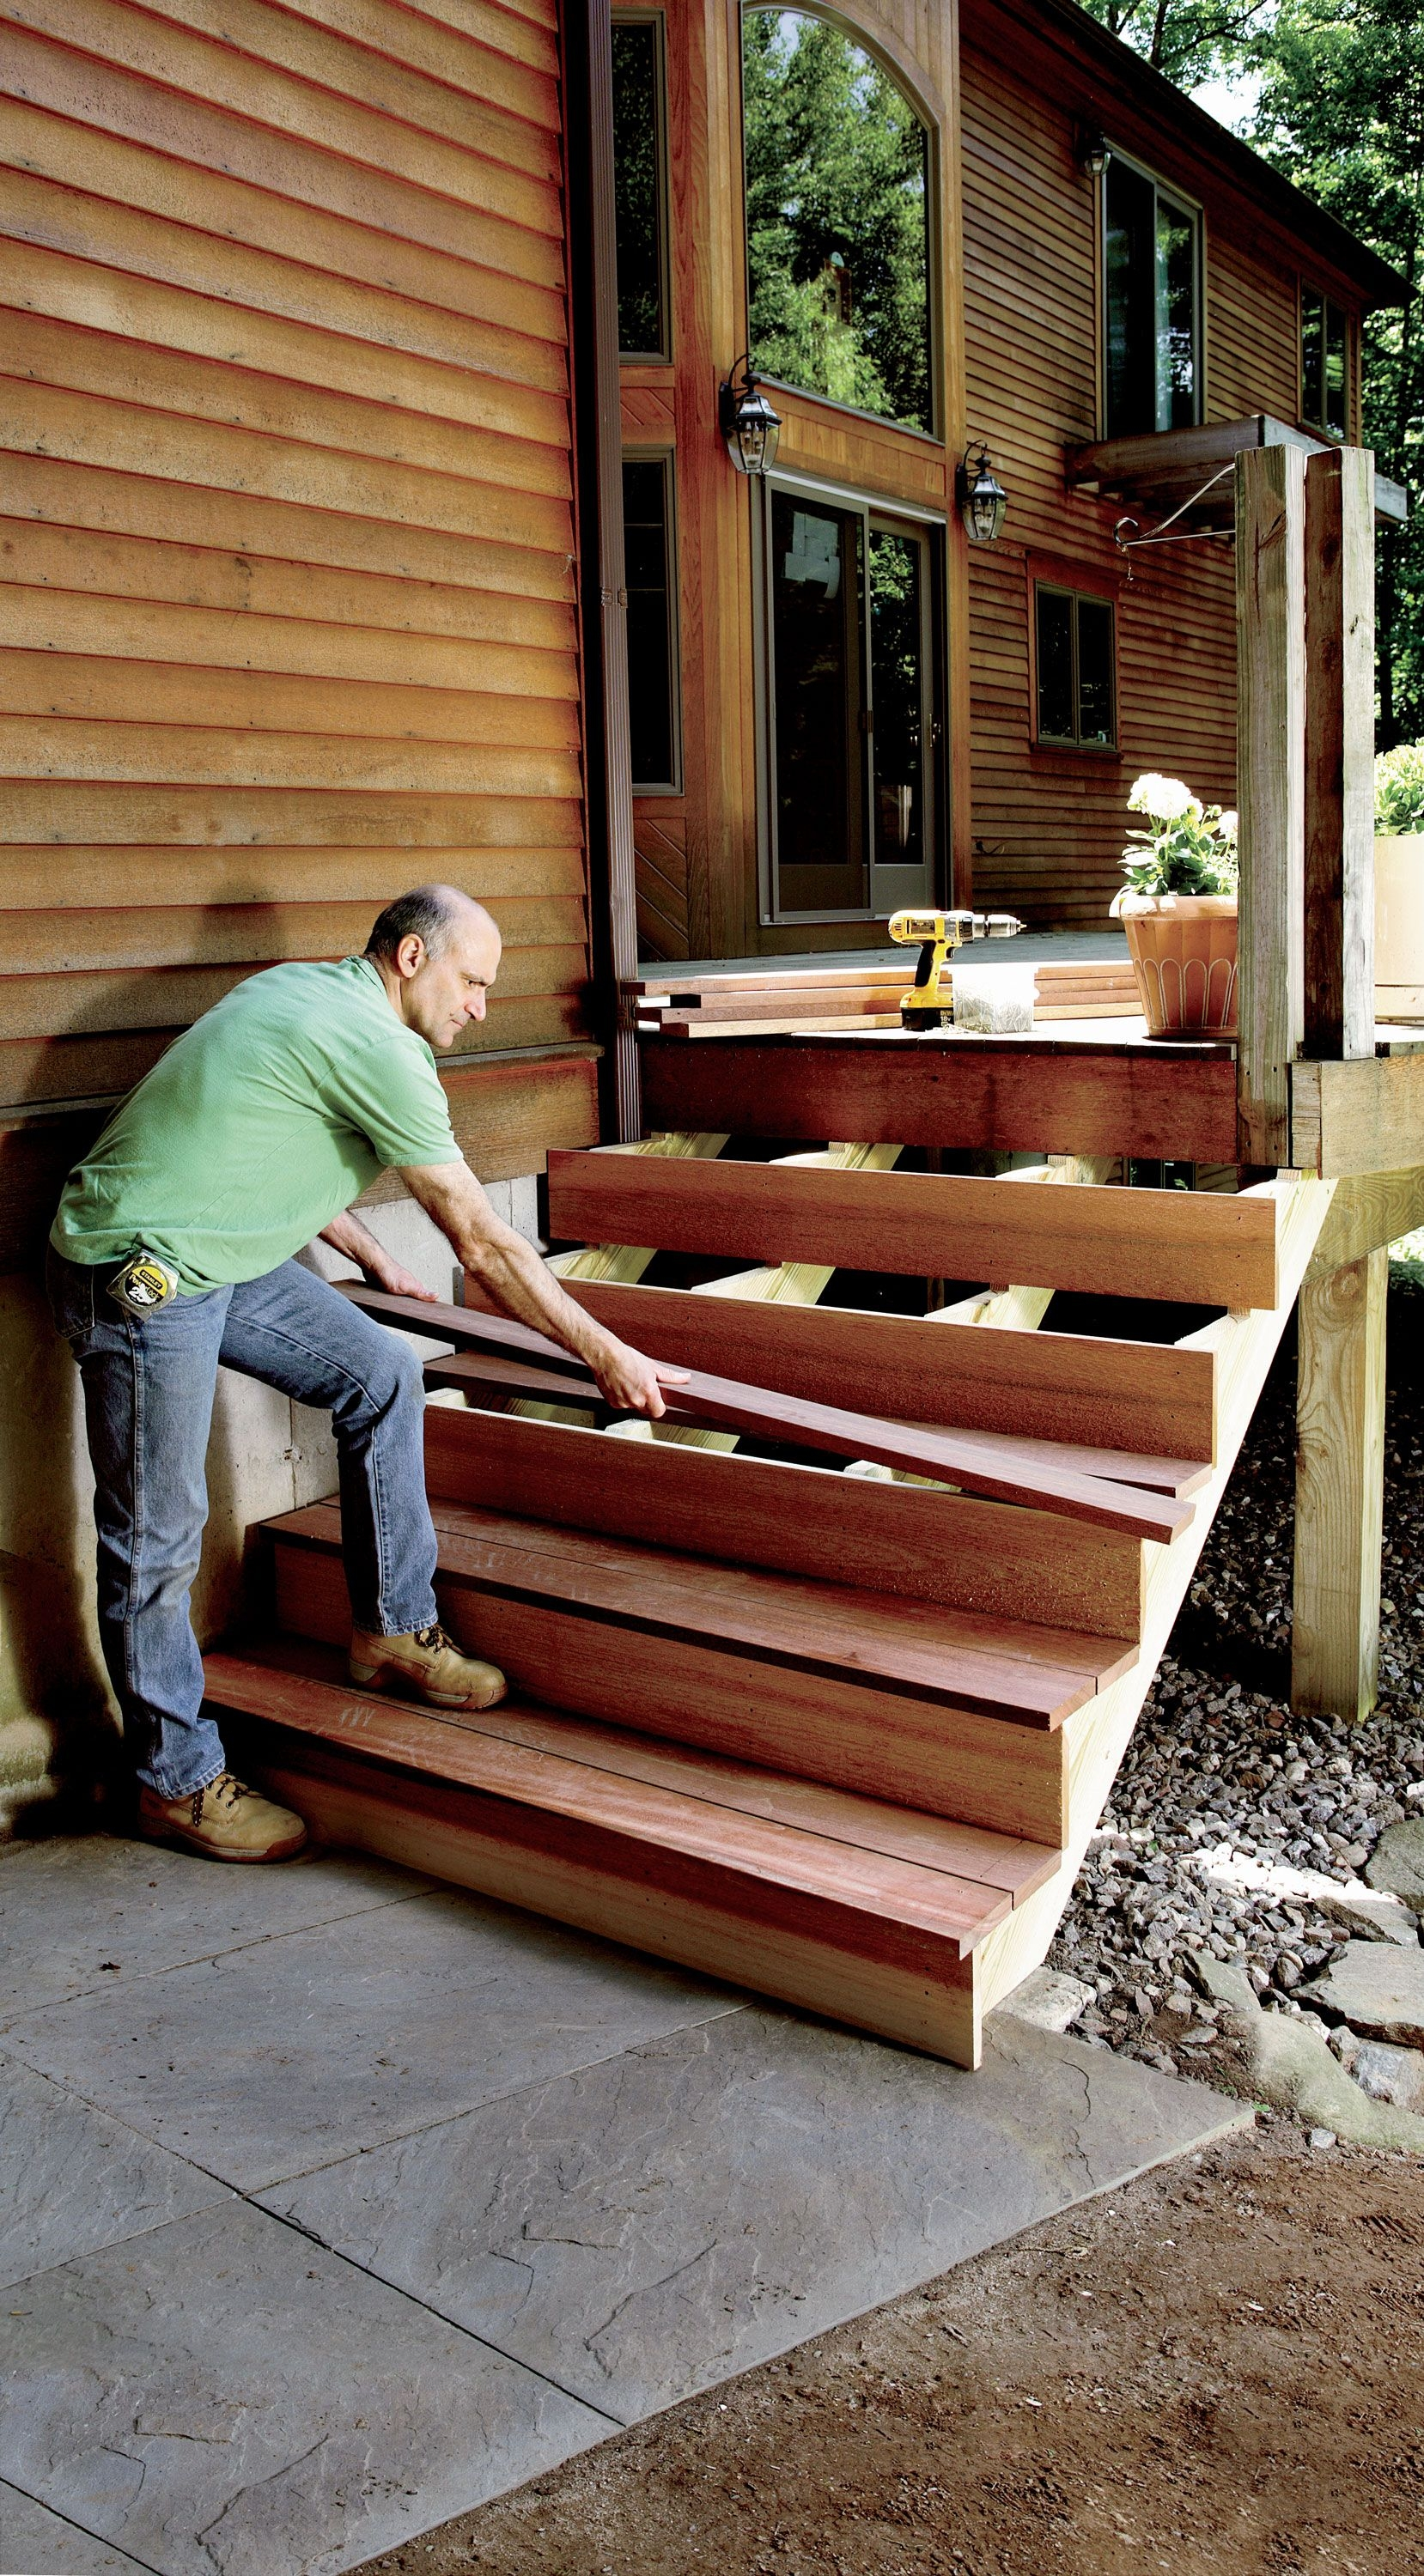 How To Build Stairs Stairs Design Plans | Simple Designs Of Stairs Inside House | Cheap | Fancy House | Ultra Modern | Space | Hidden